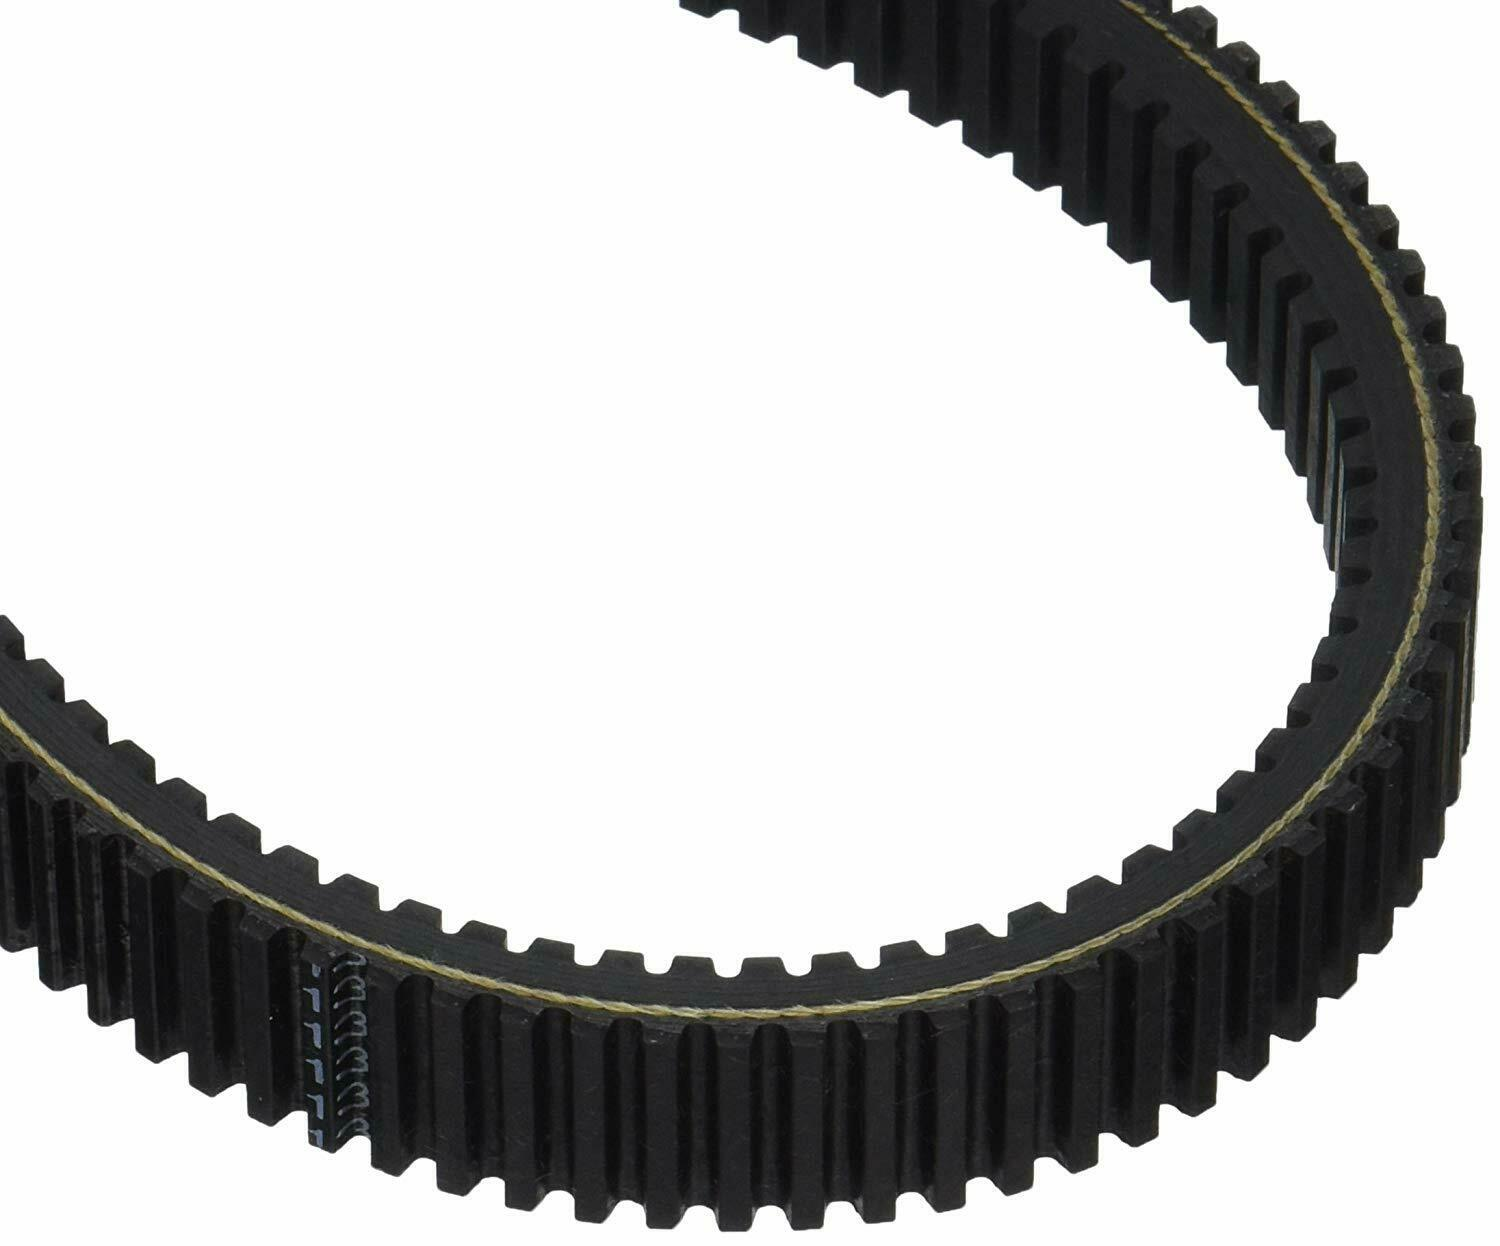 EZGO RXV Drive Belt / TXT Drive Belt For Golf Carts w/ Kawasaki Clutch & Engine